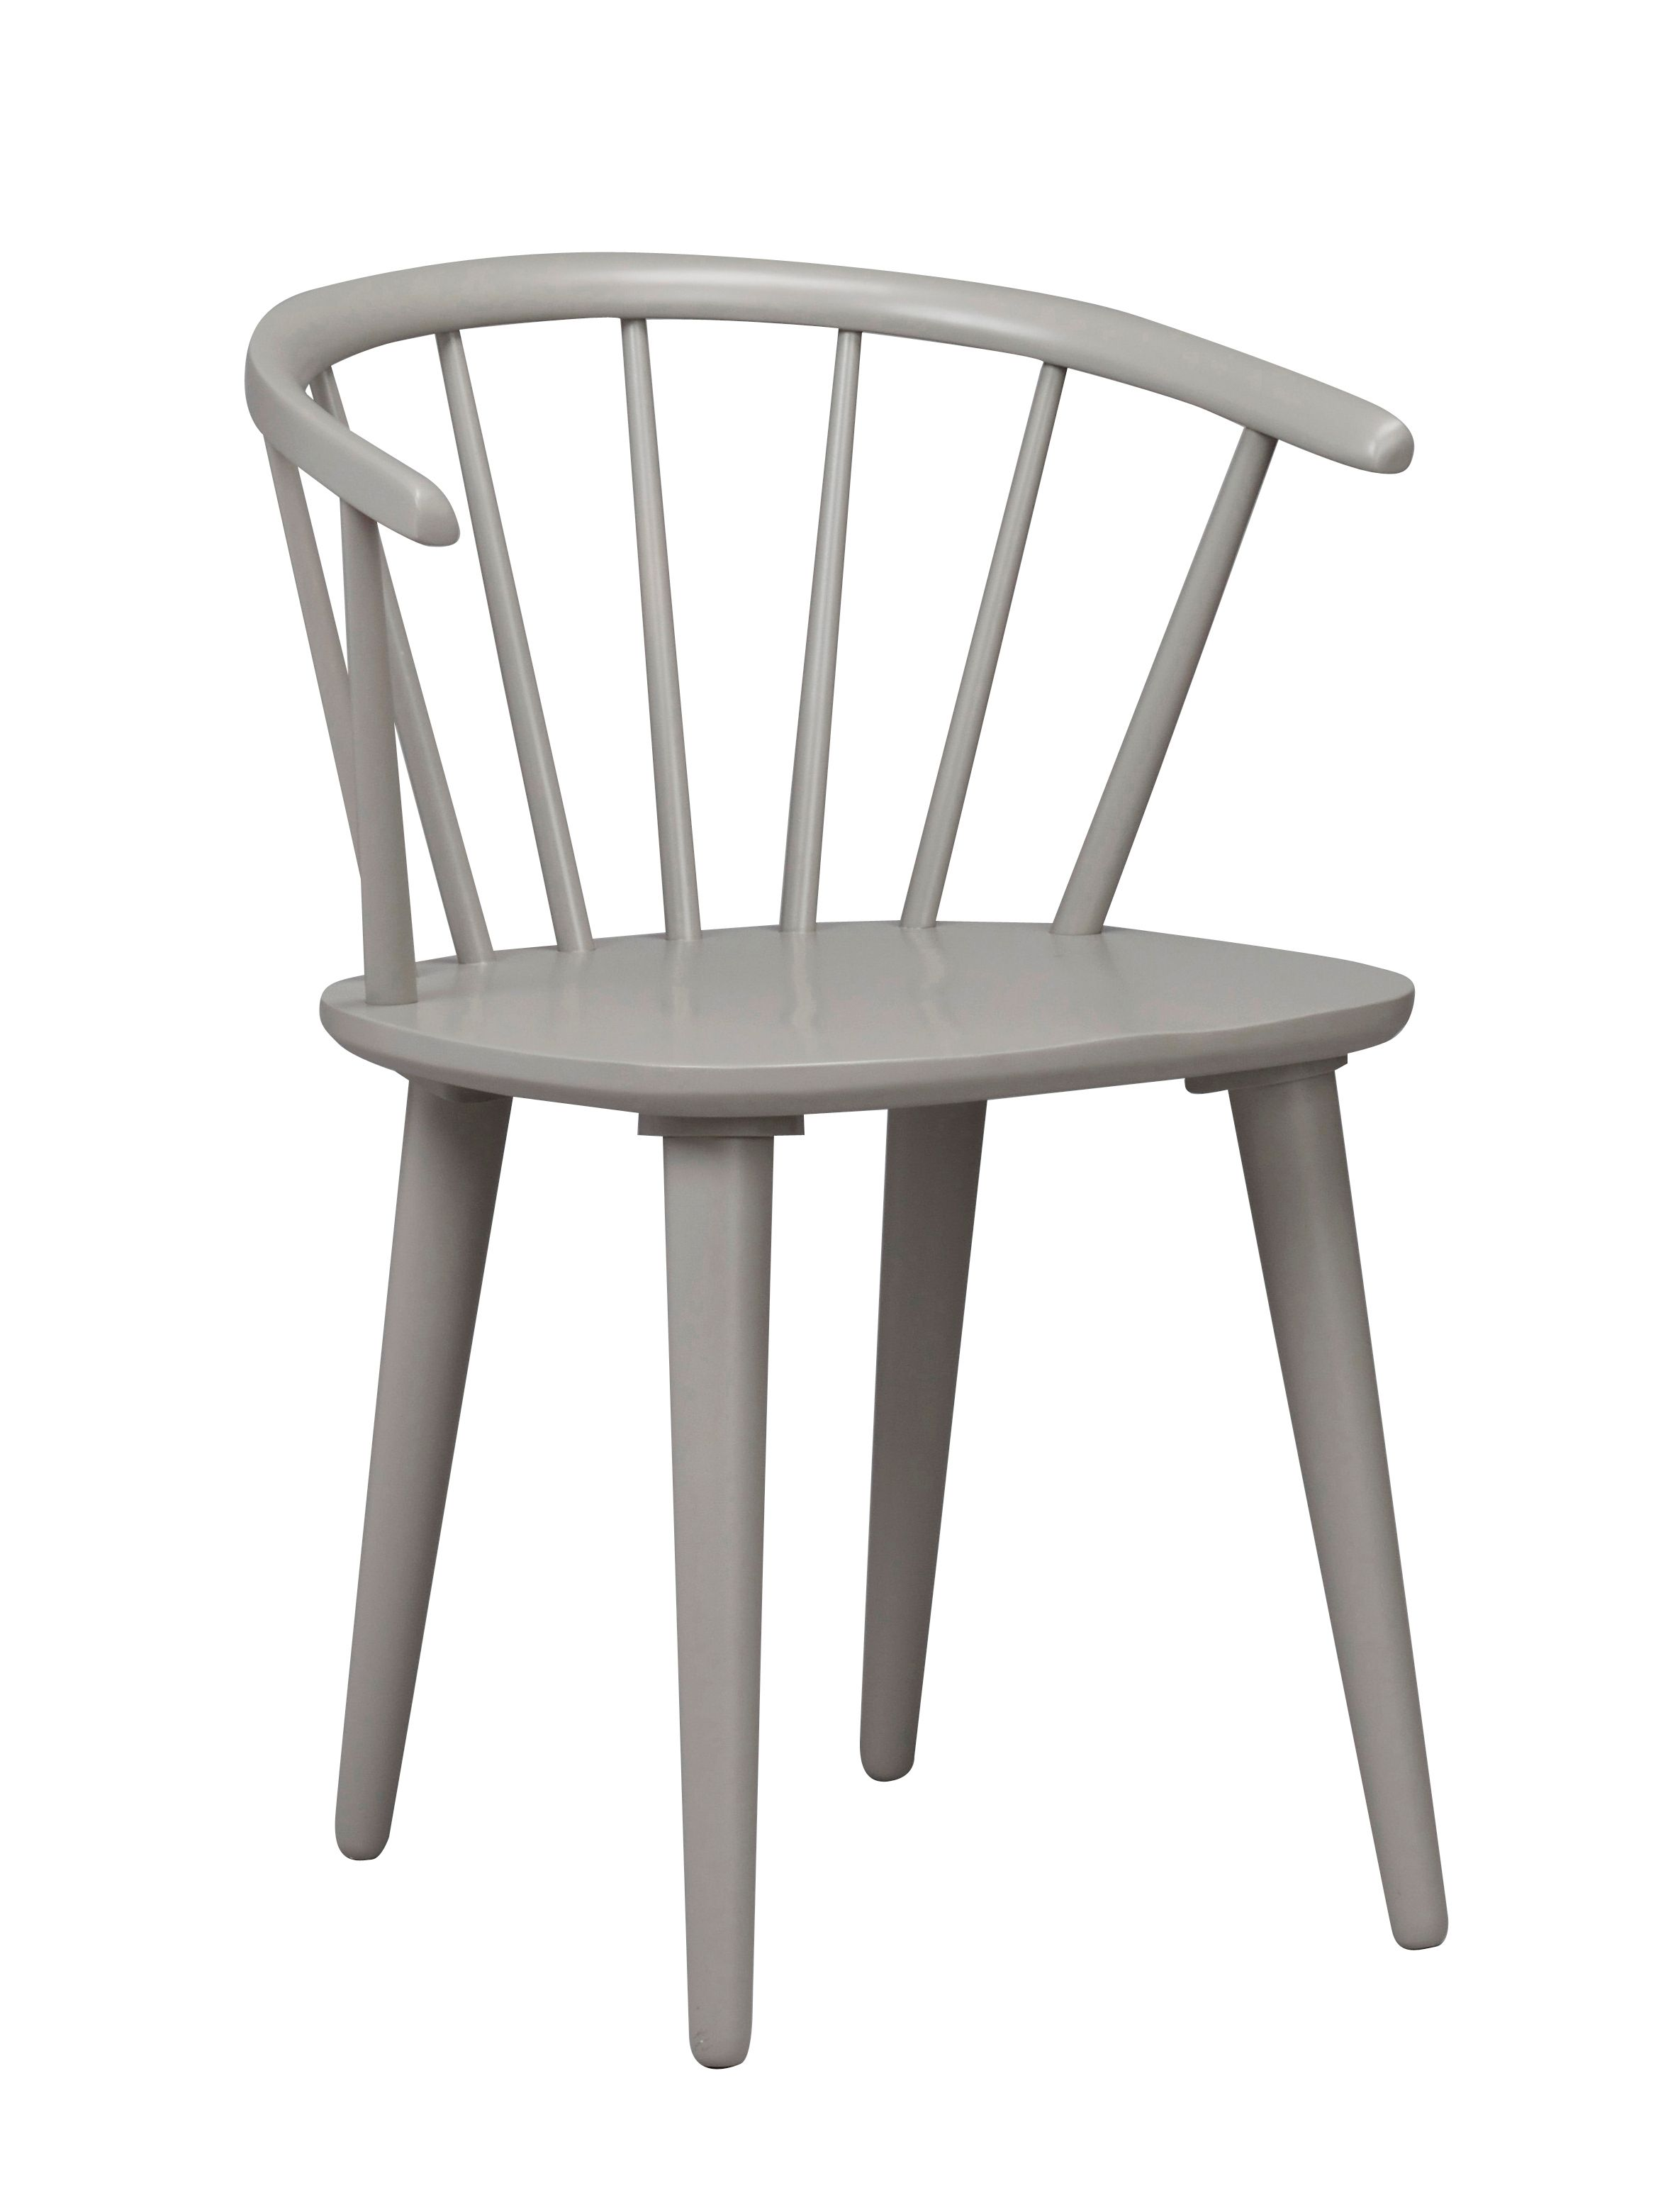 CARMEN CHAIR Grey Solid Rubberwood Chair